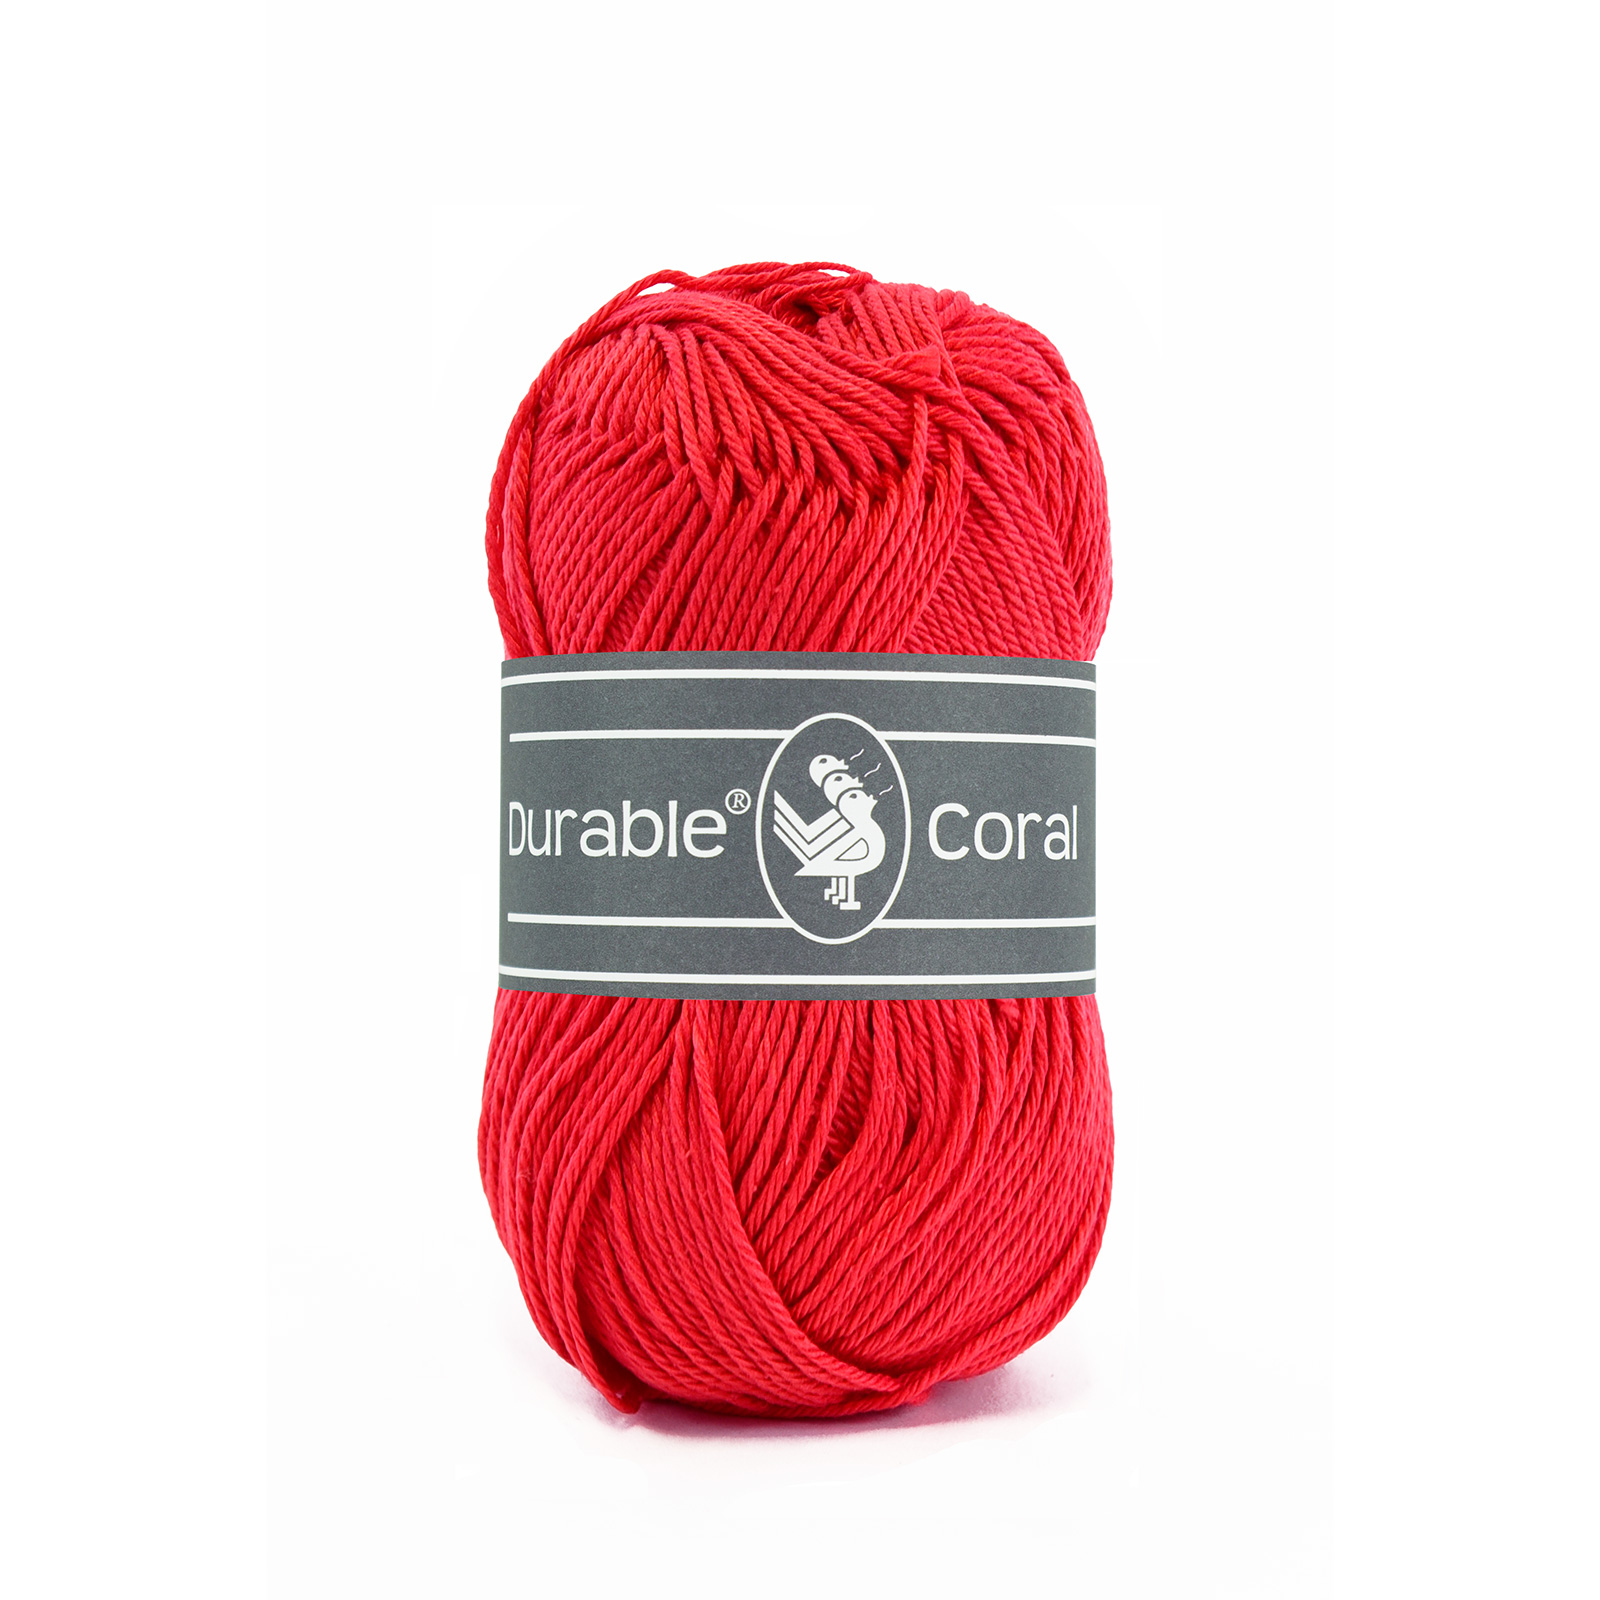 Durable Coral – 316 Red